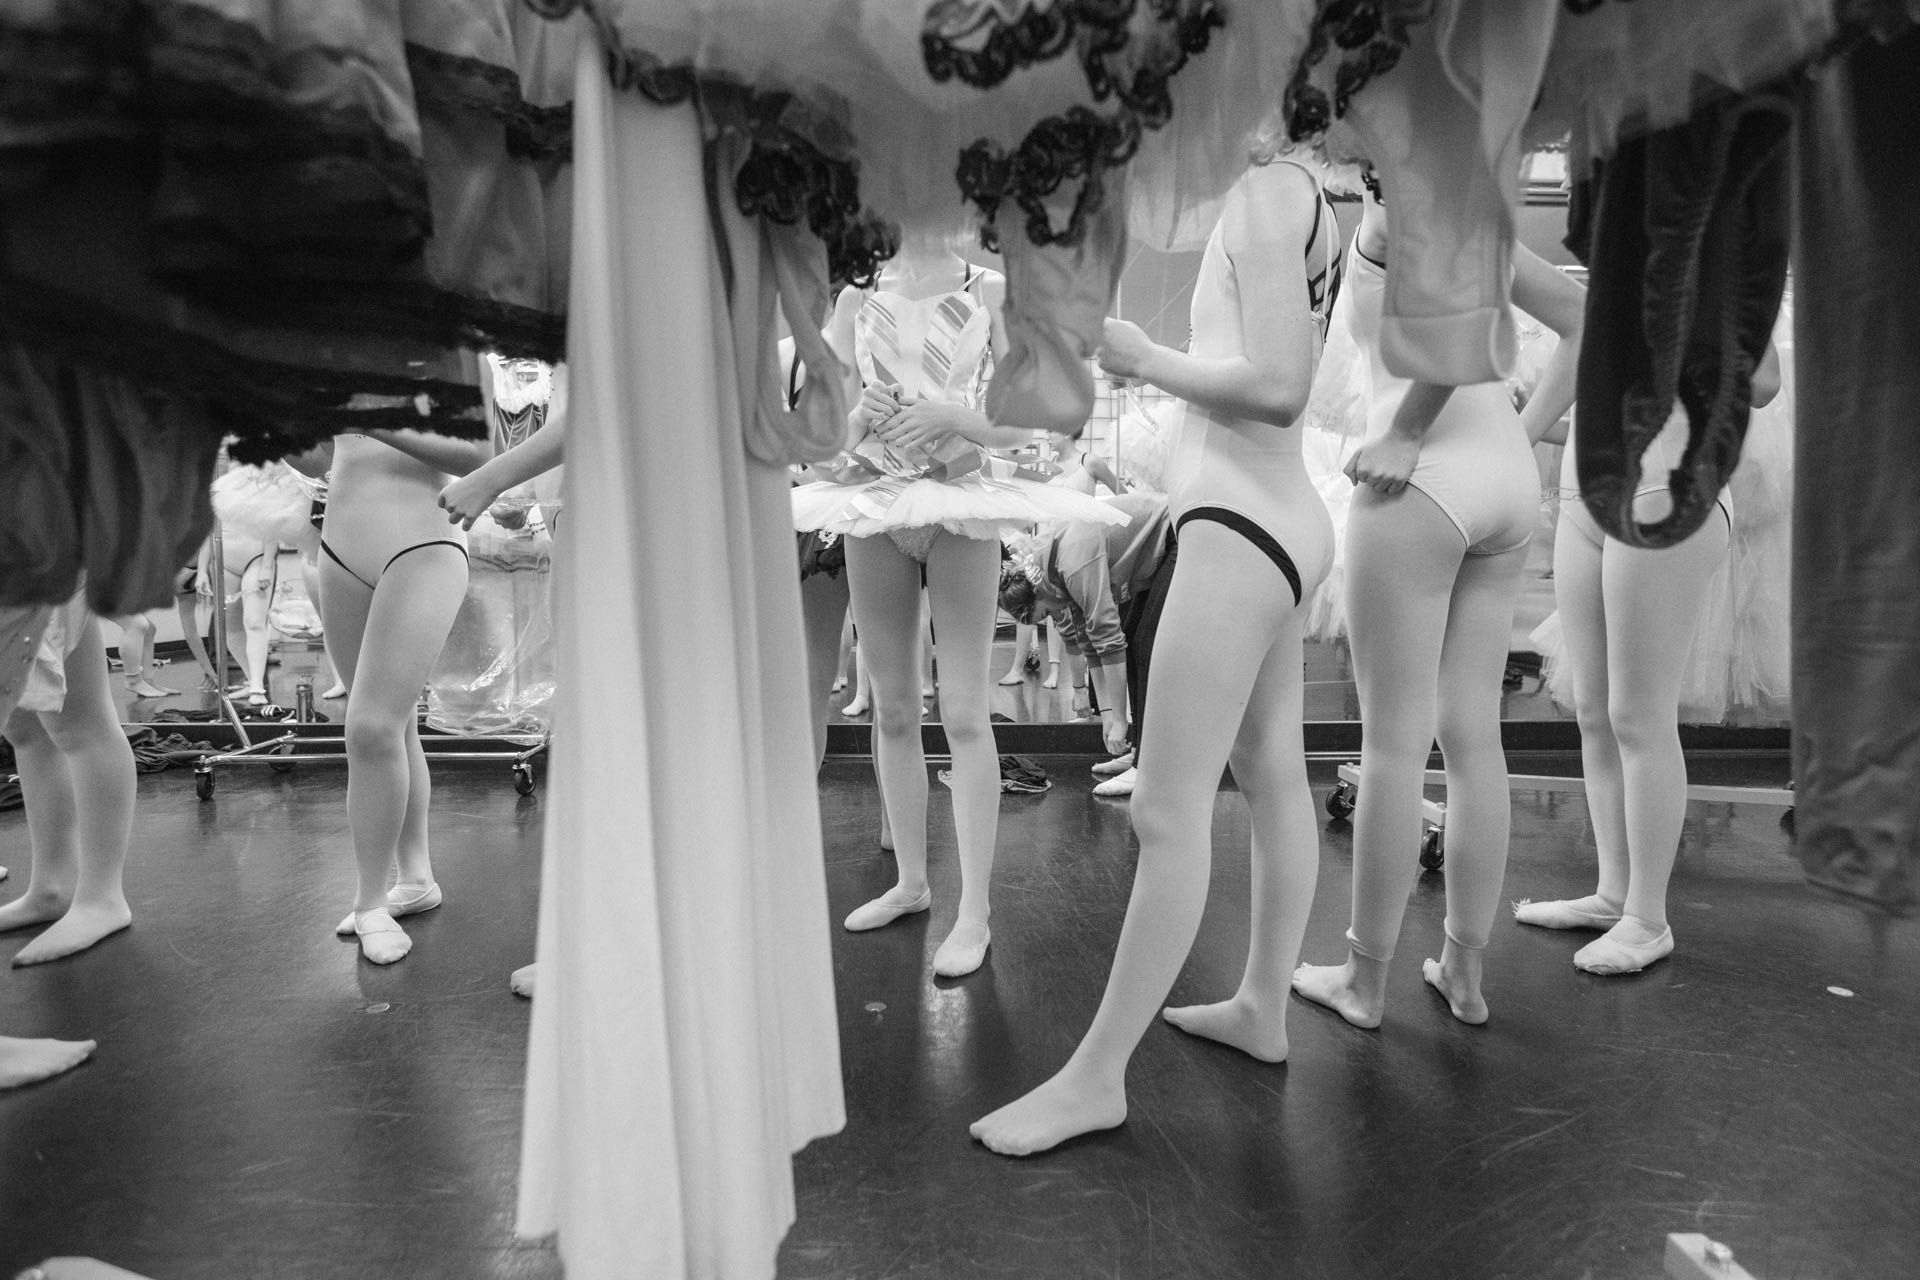 nutcracker-costume-day-at-dance-studio-9937